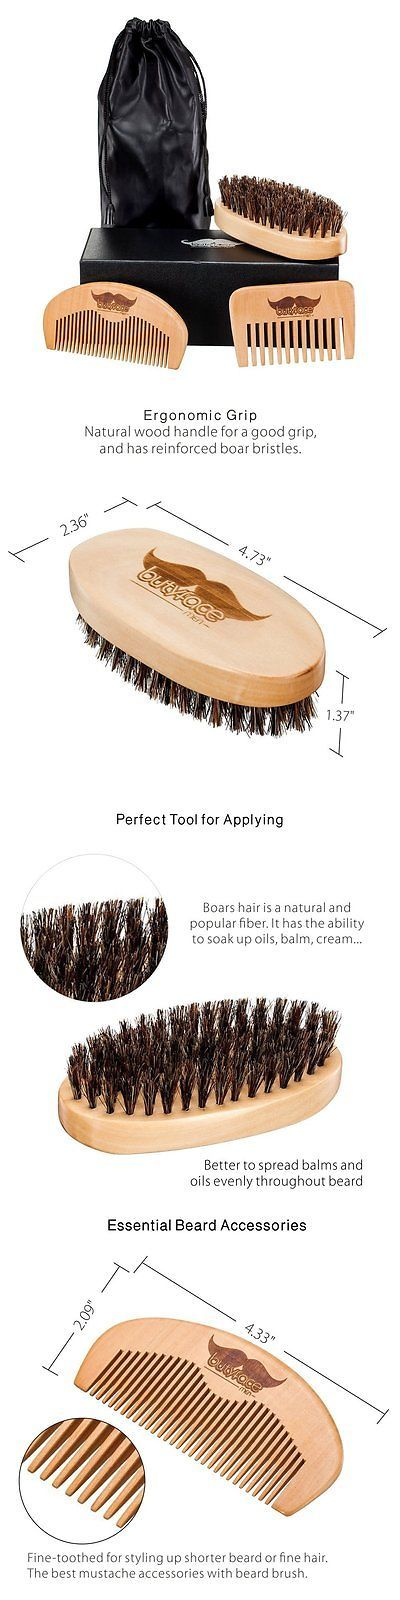 the 25 best beard grooming kits ideas on pinterest beard oil kit beard grooming styles and. Black Bedroom Furniture Sets. Home Design Ideas